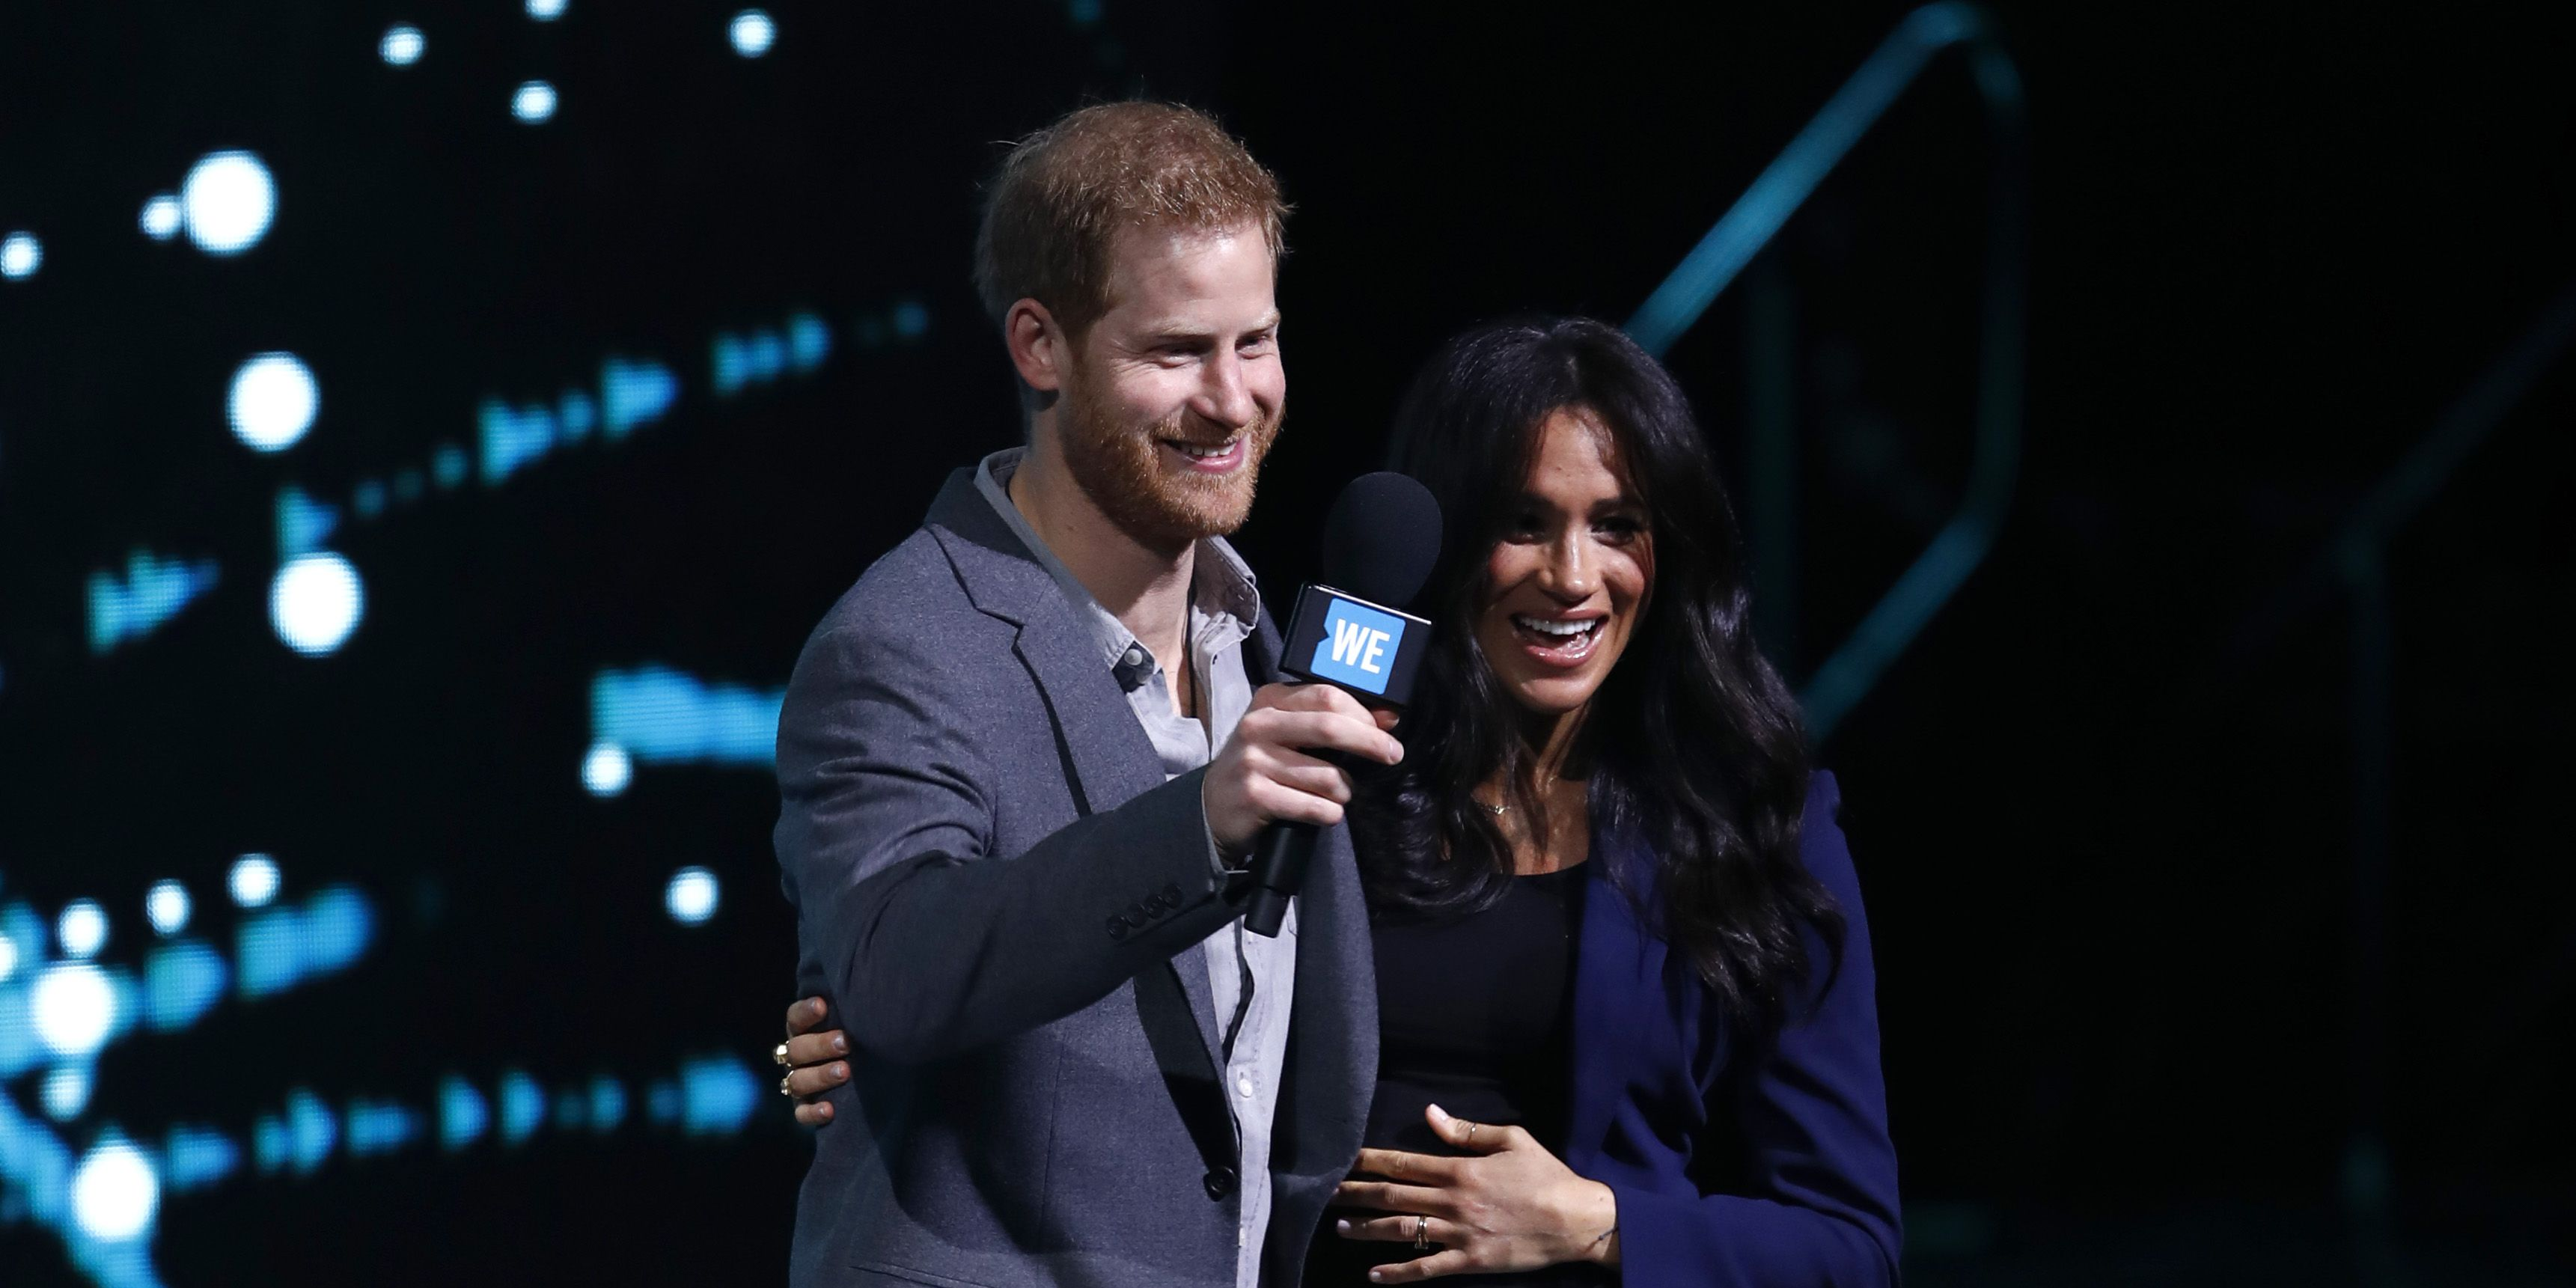 WE Day UK 2019 - London